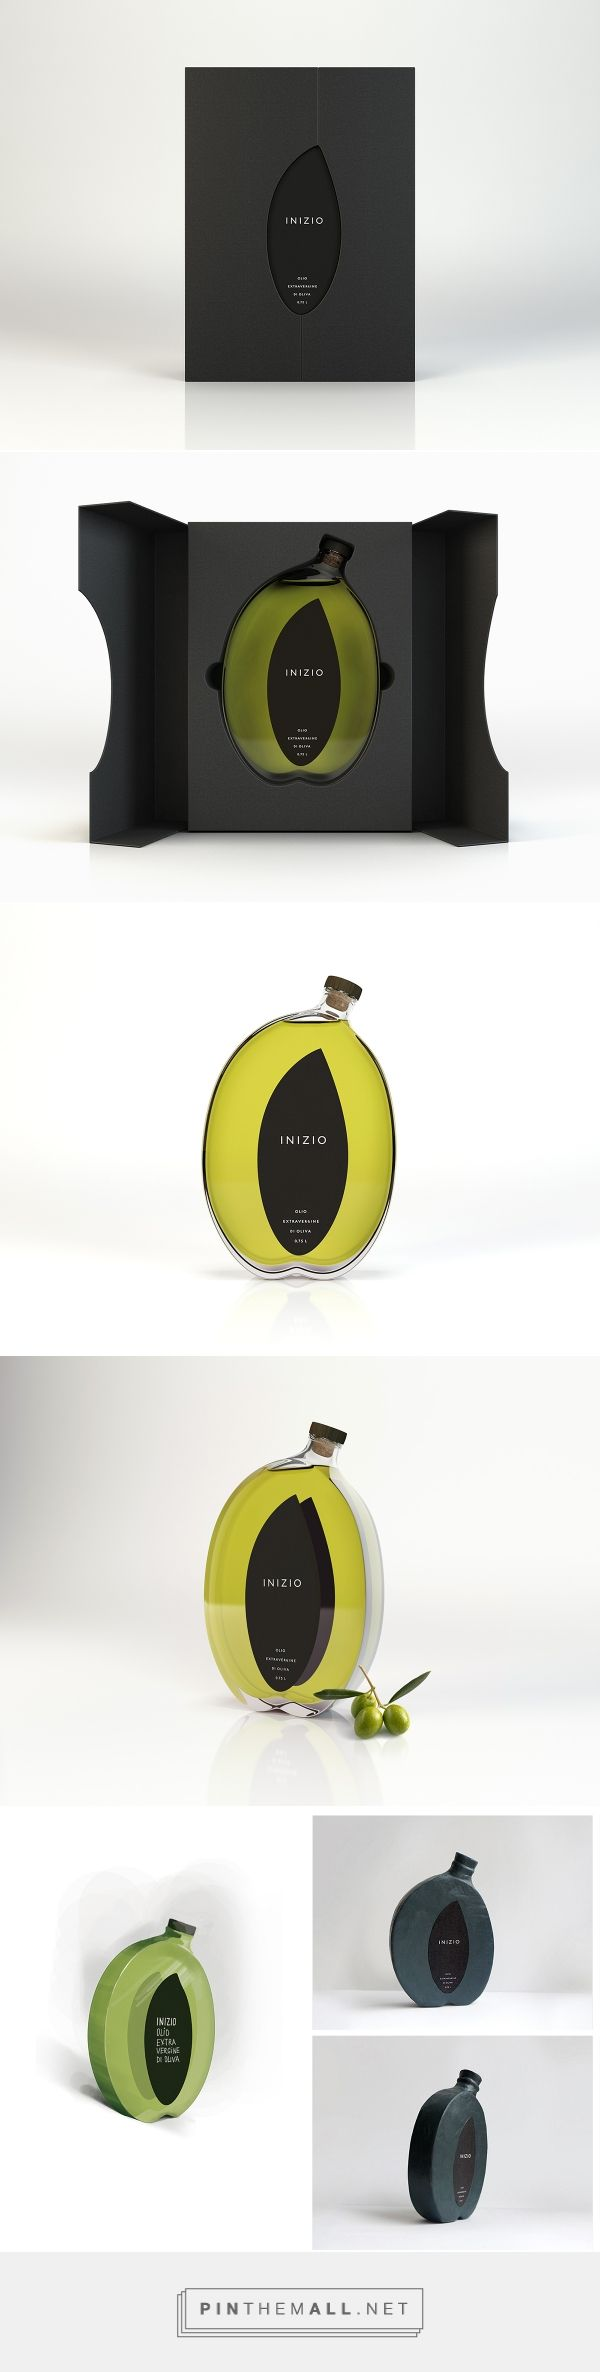 Art direction, branding and packaging for Inizio on Behance curated by Packaging Diva PD. To accentuate how natural the product is we turn to its' origin. For this reason the brand is called Inizio (Italian for beginning), and the package accurately imitates an olive - it's shape, it's color, it's essence.